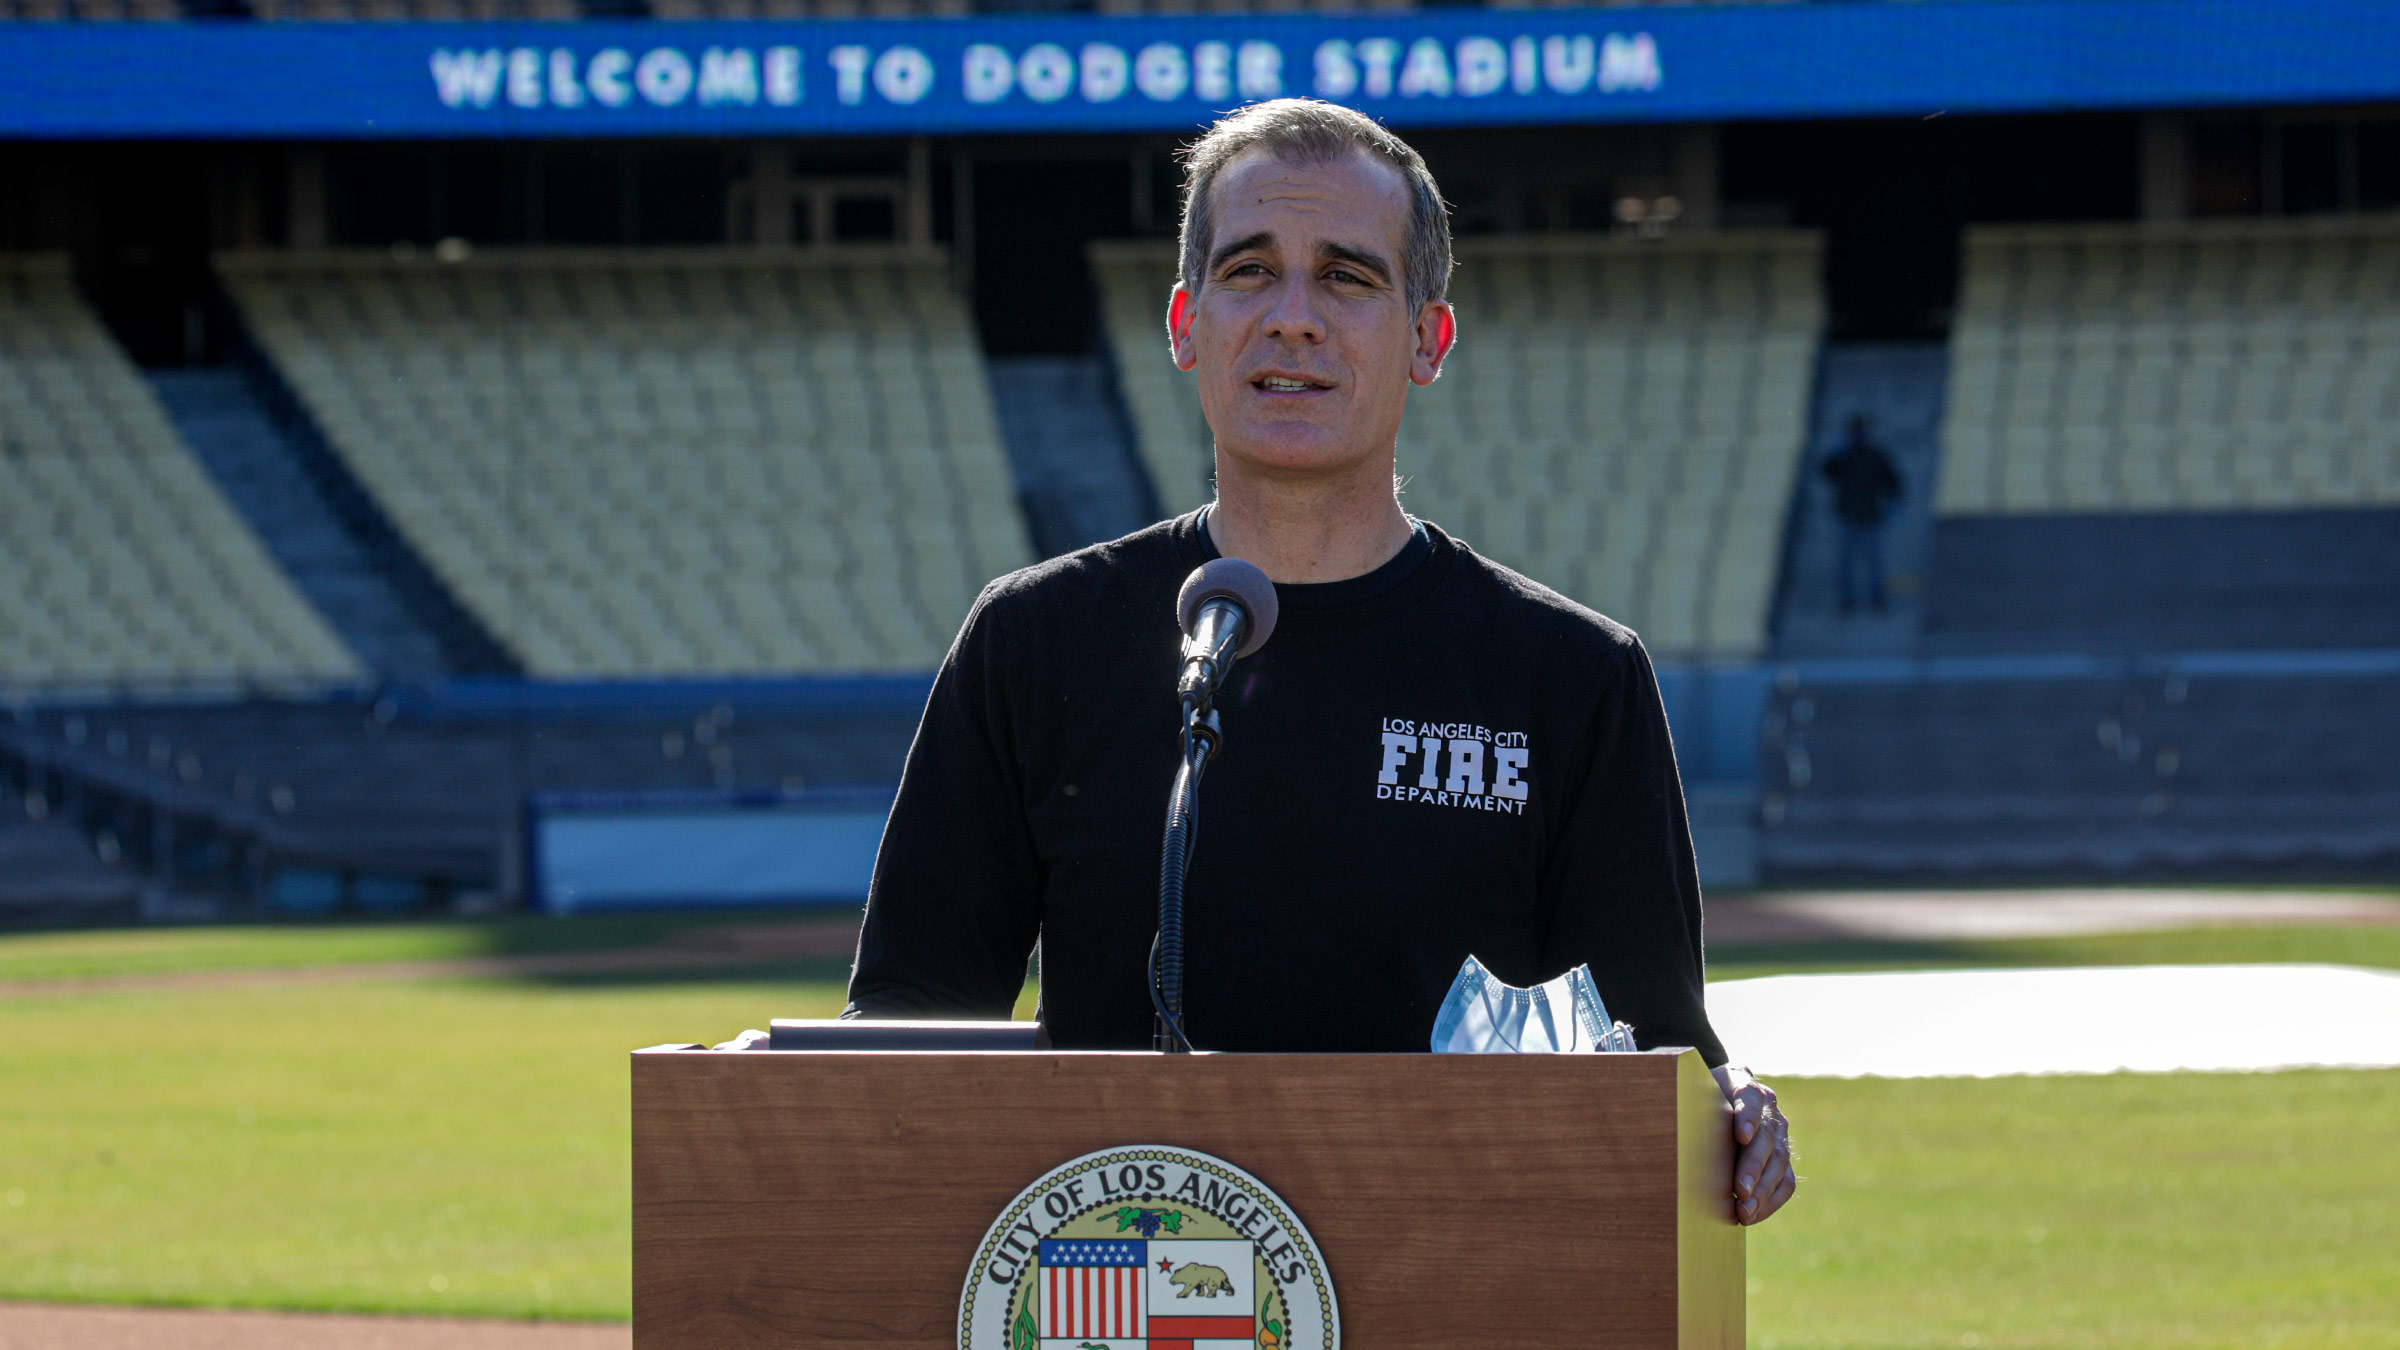 Los Angeles Mayor Eric Garcetti speaks during a press conference held at the launch of a mass Covid-19 vaccination site at Dodger Stadium on January 15, in Los Angeles, California.